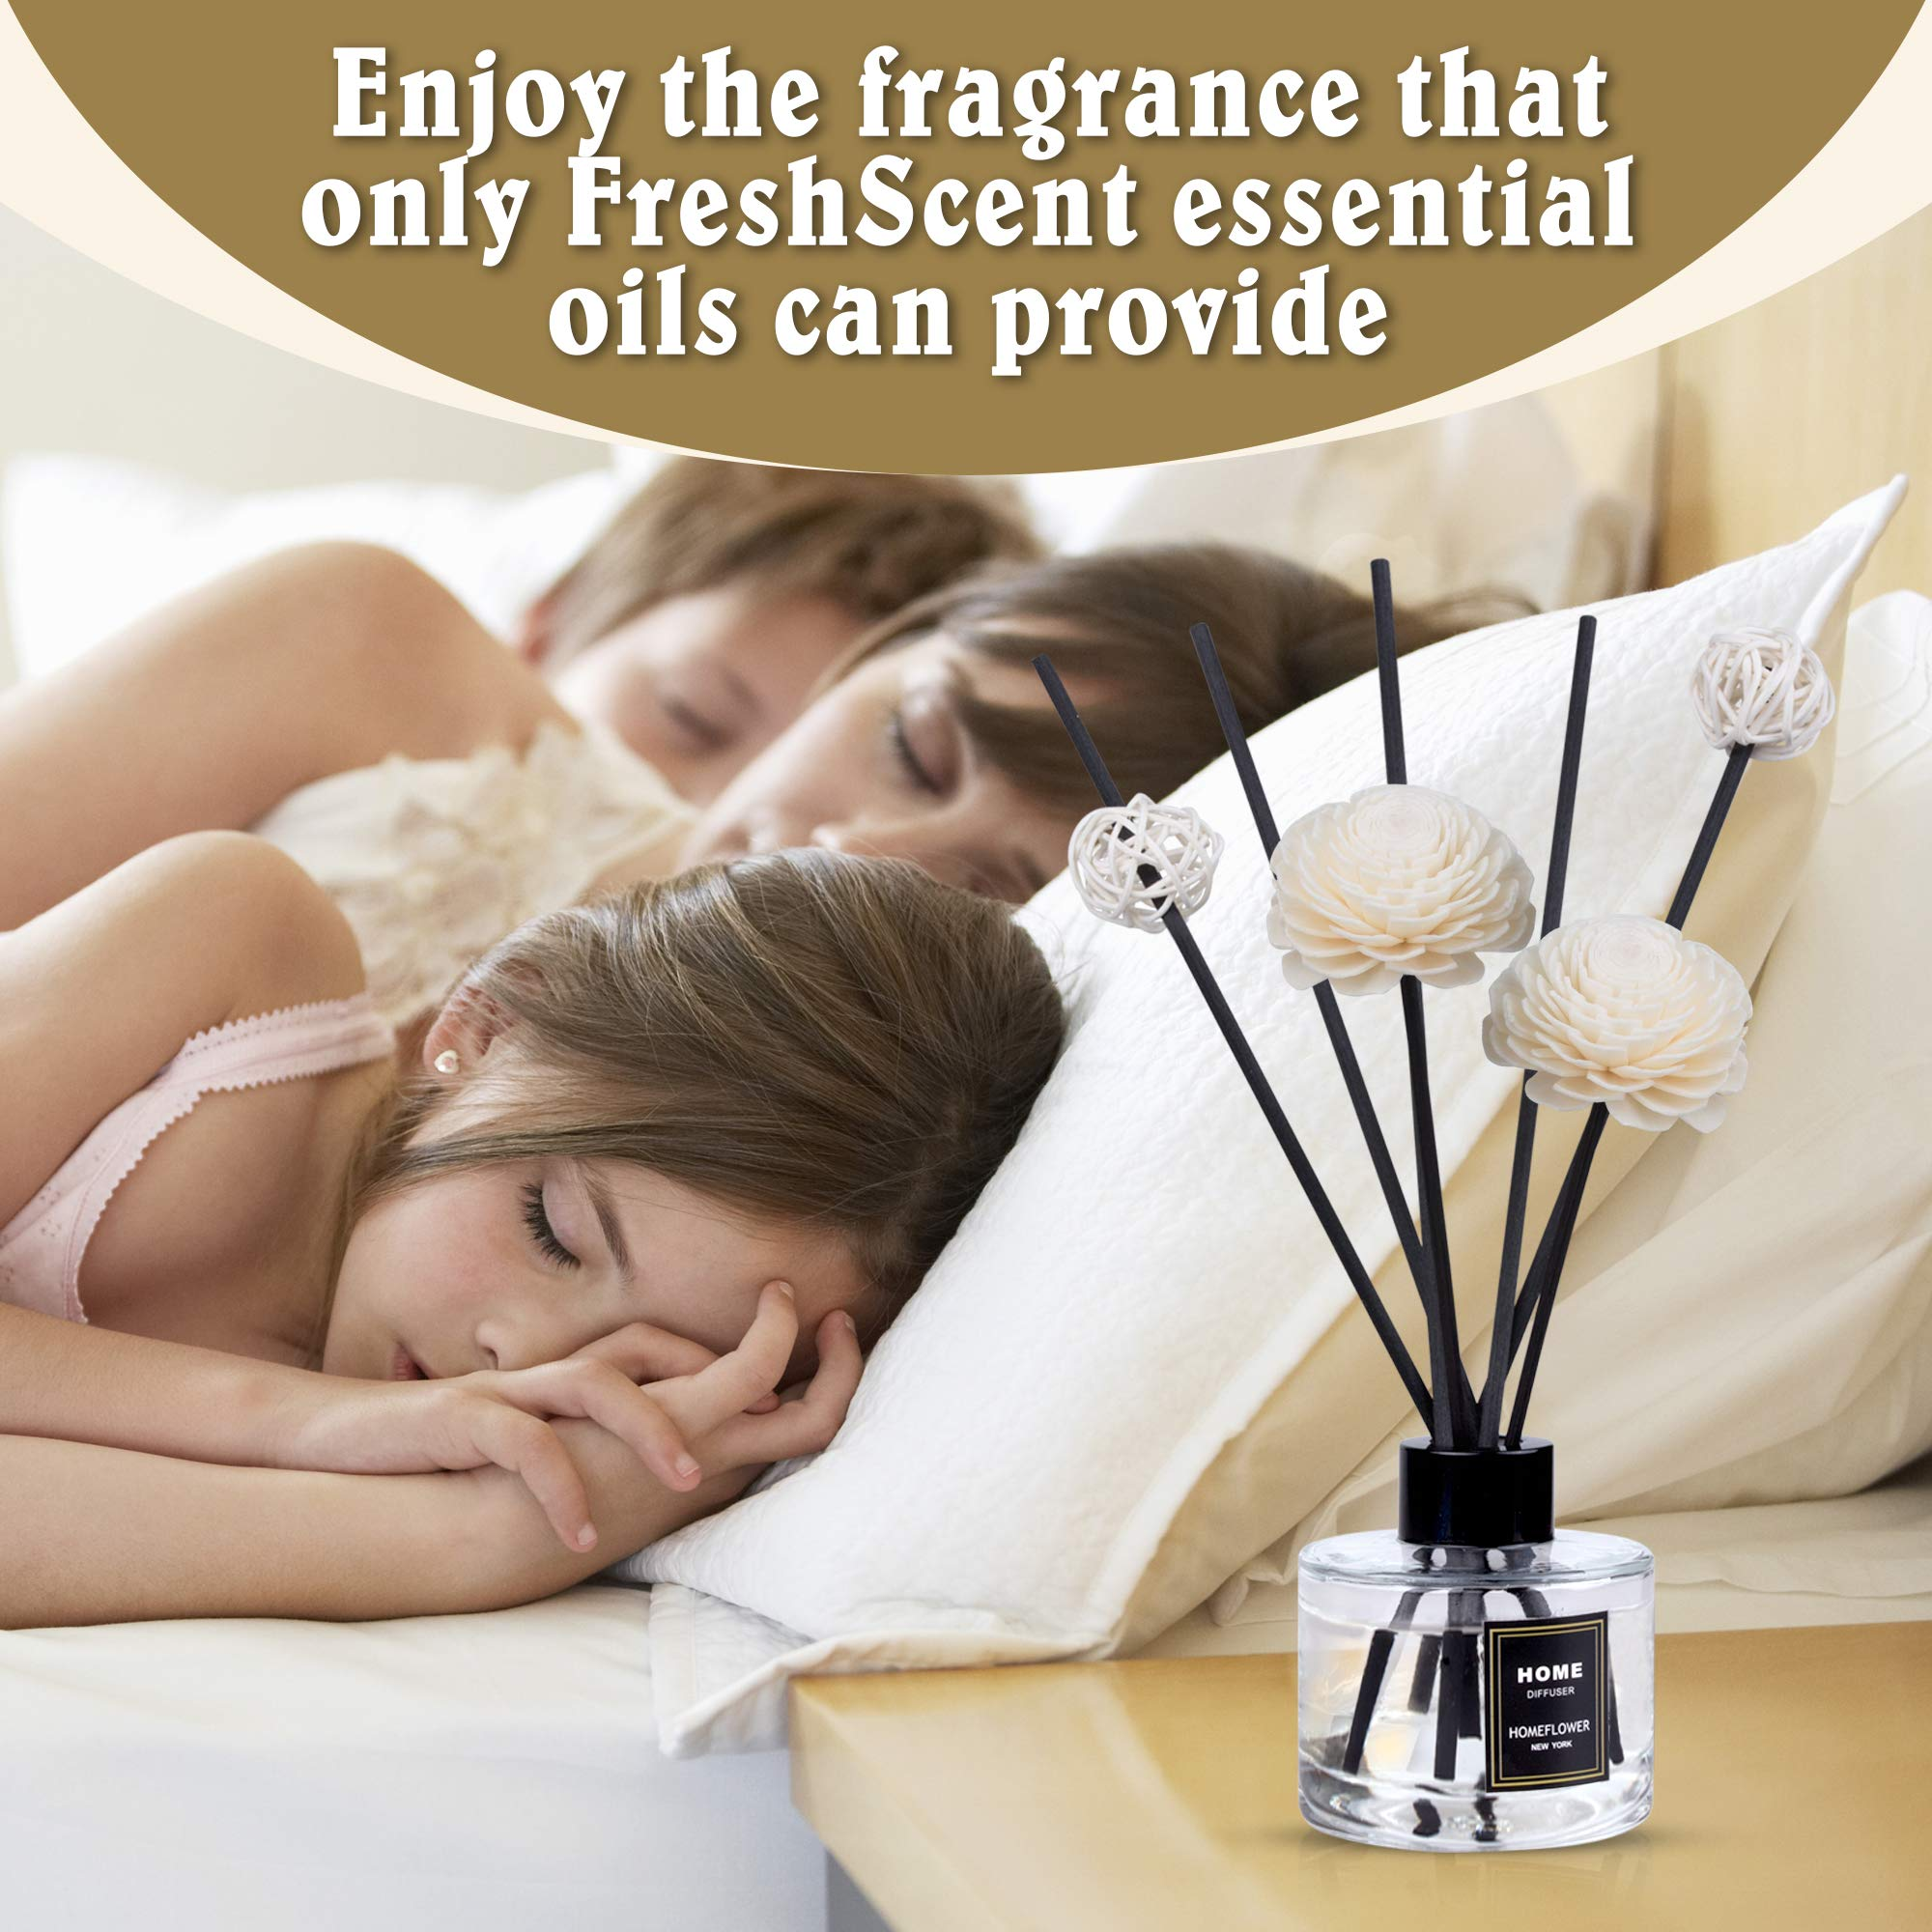 HomeFlower Reed Diffuser Set Lavender: Scent Sticks & Sola Flowers Included - Scented Liquid Fragrance Oil - Room Diffusers for Home or Bathroom - Made with FreshScent Premium Essential Oils - 4 oz by HomeFlower (Image #5)